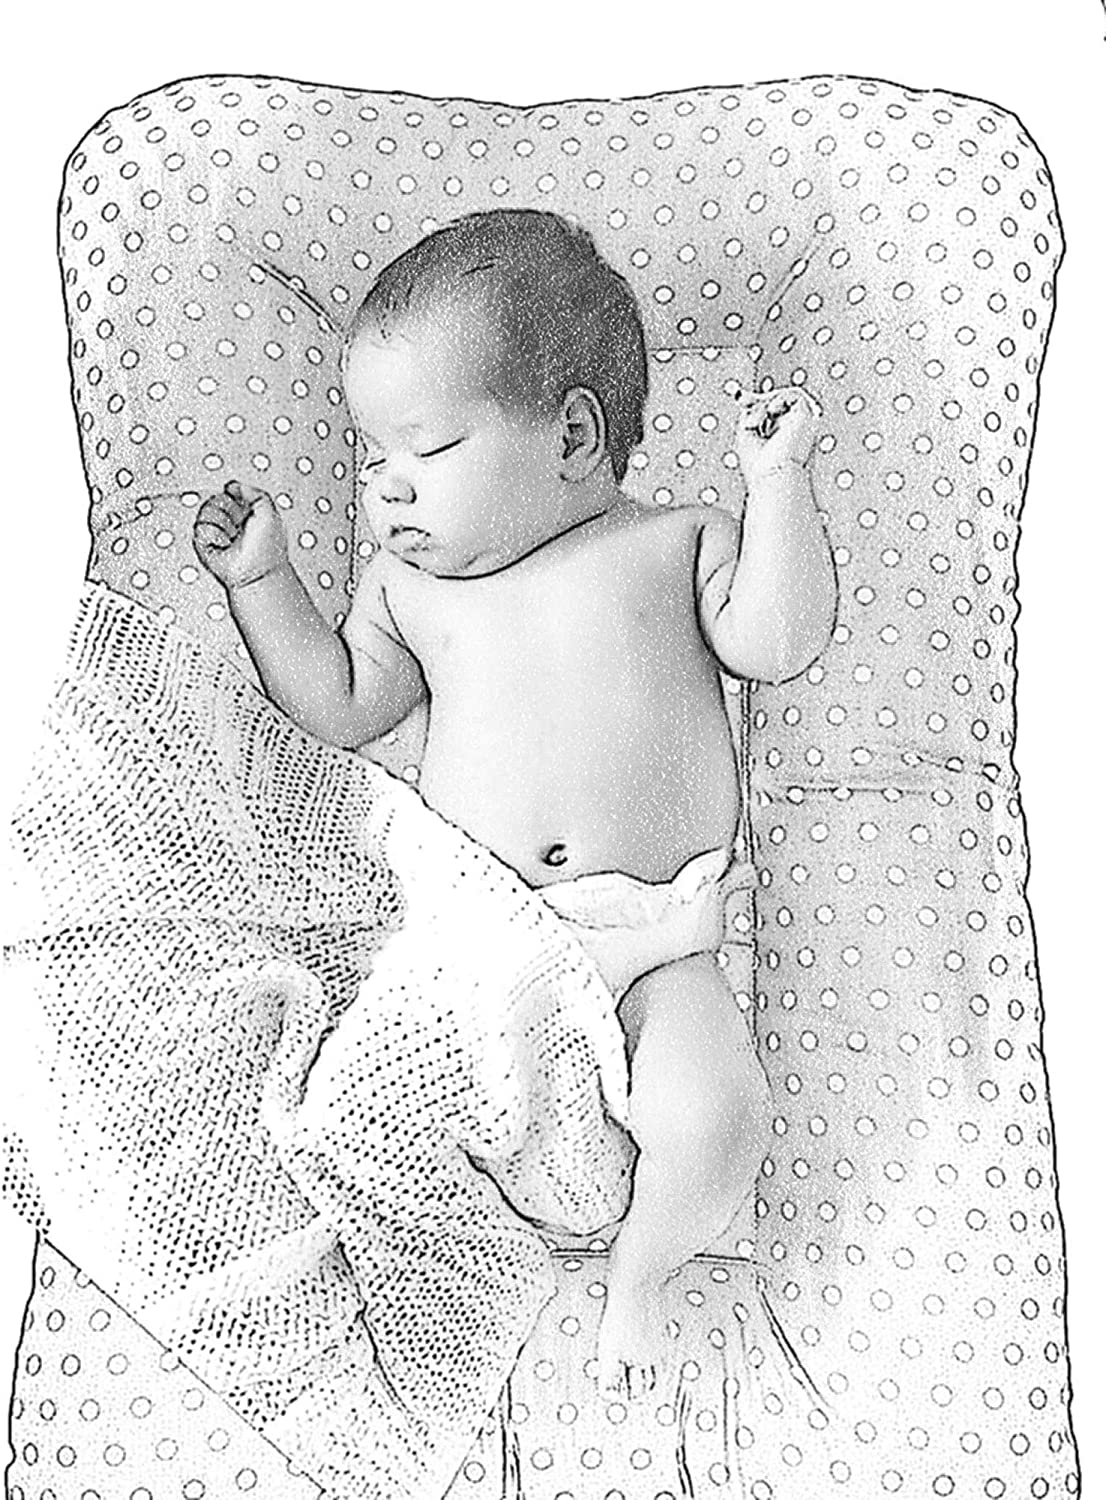 80cm x 50cm. CraftSpace Deluxe Baby Set for newborn babies Lounger + Pillow Cotton and Hypoallergenic filler Various Designs Beige//Grey dots Double-sides